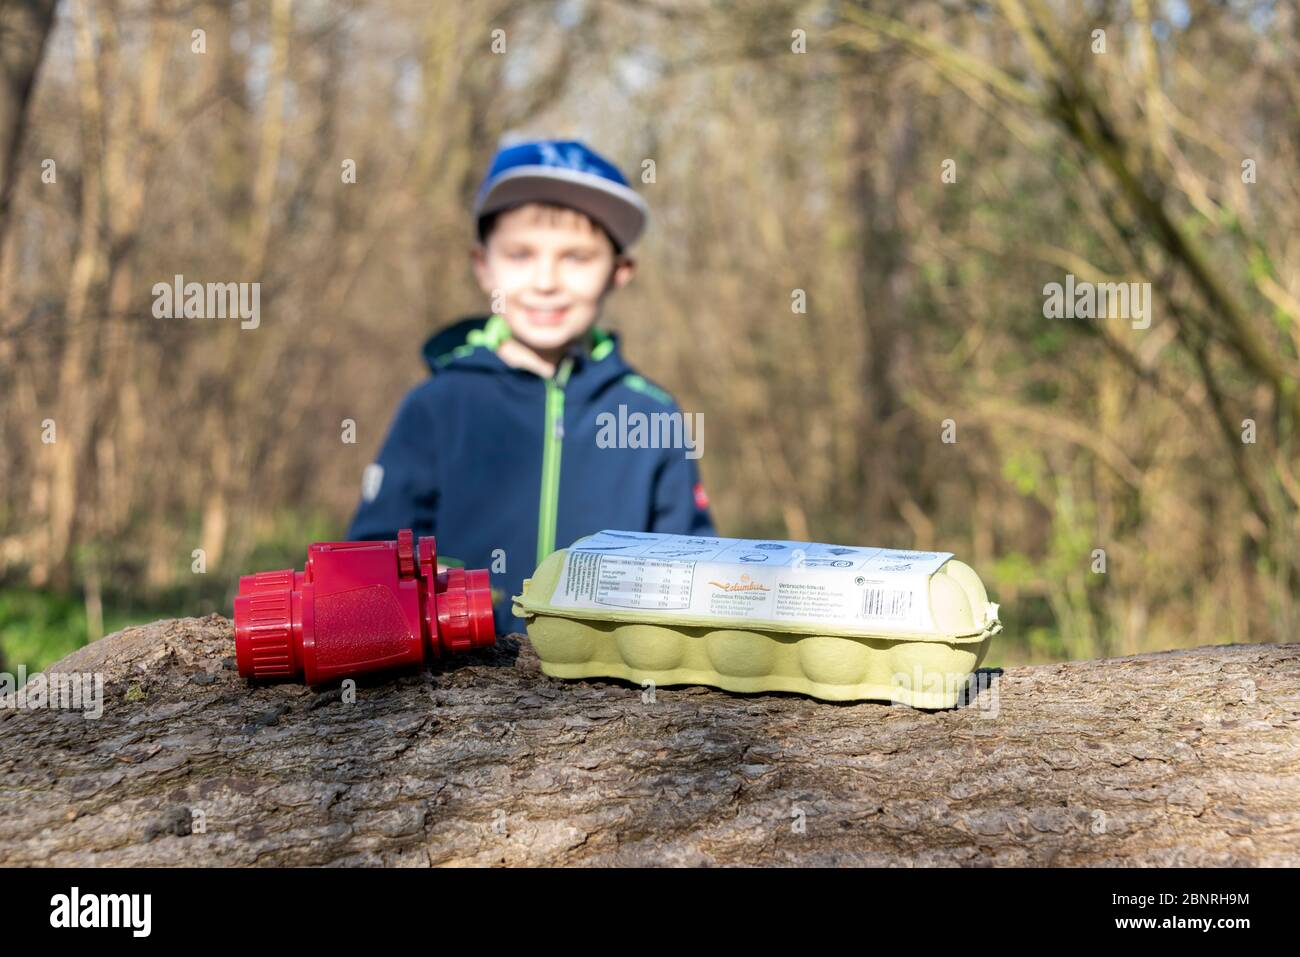 Boy, binoculars, egg packaging, a forest game to find leaves, ferns, mosses, feathers and small branches. Game idea in times of Corona. Stock Photo